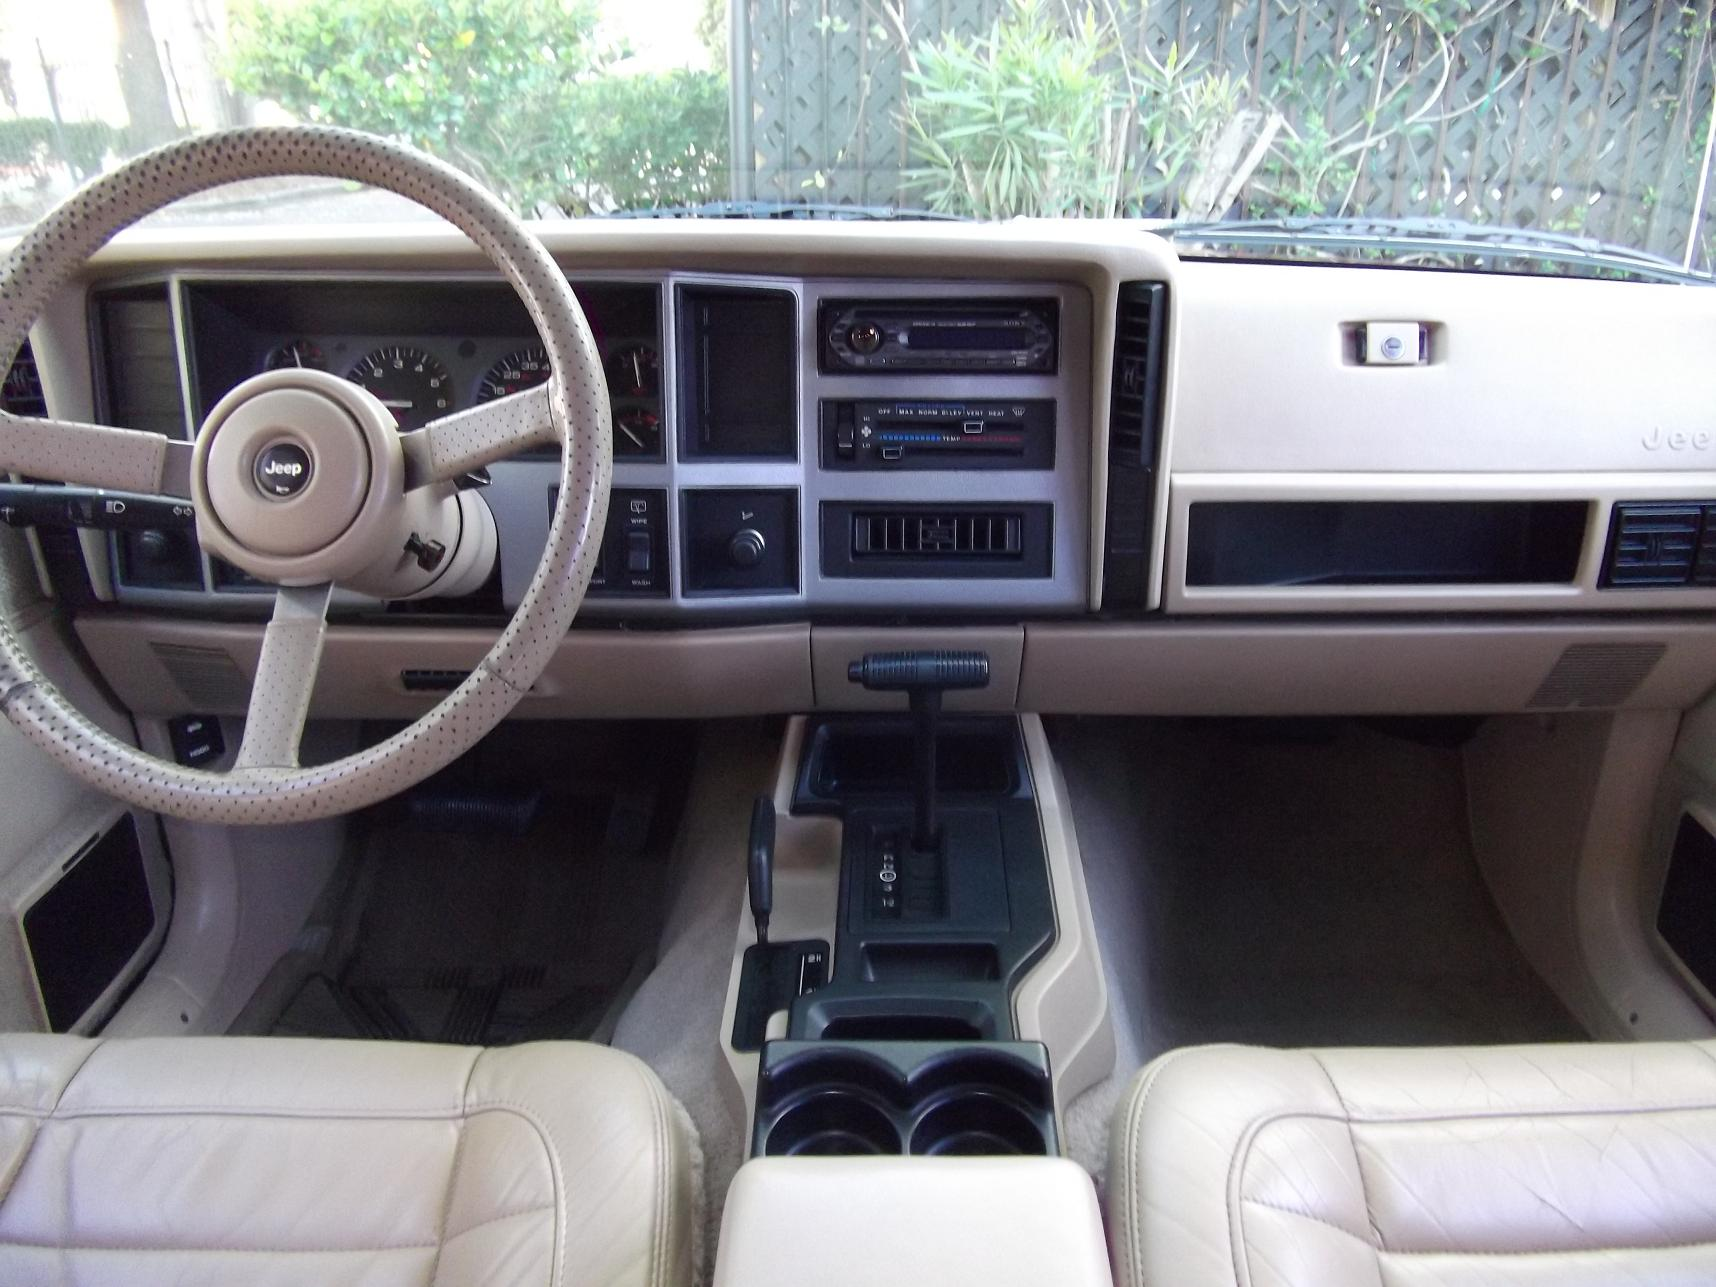 Jeep cherokee xj military wiki fandom powered by wikia 1993 jeep grand cherokee interior